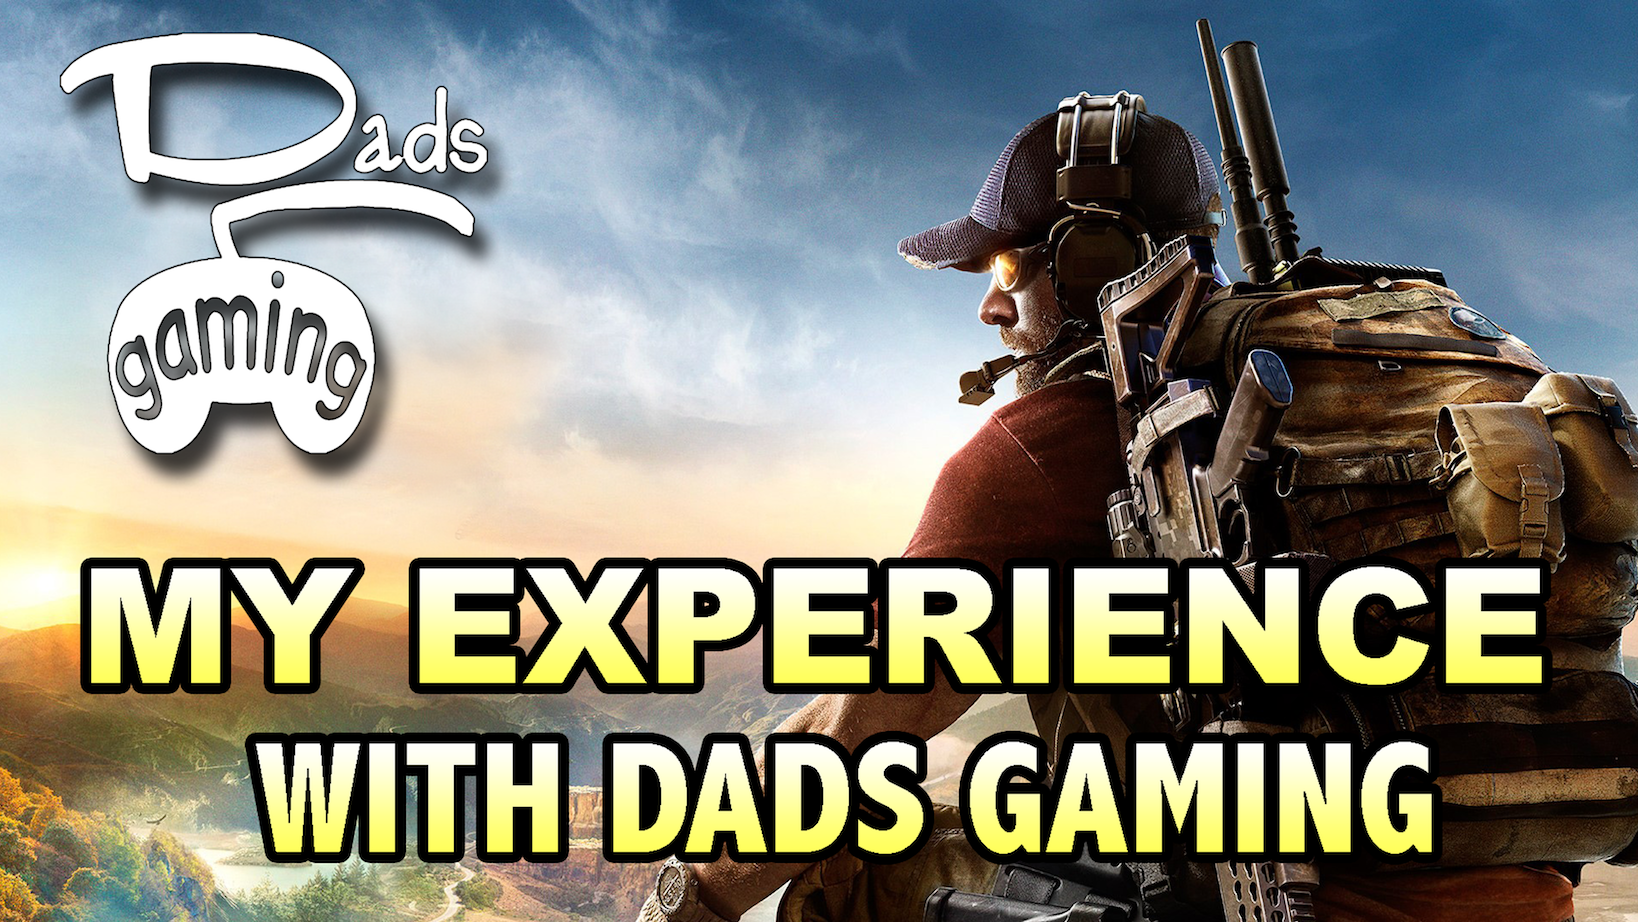 Dads Gaming - Online Community for Dads